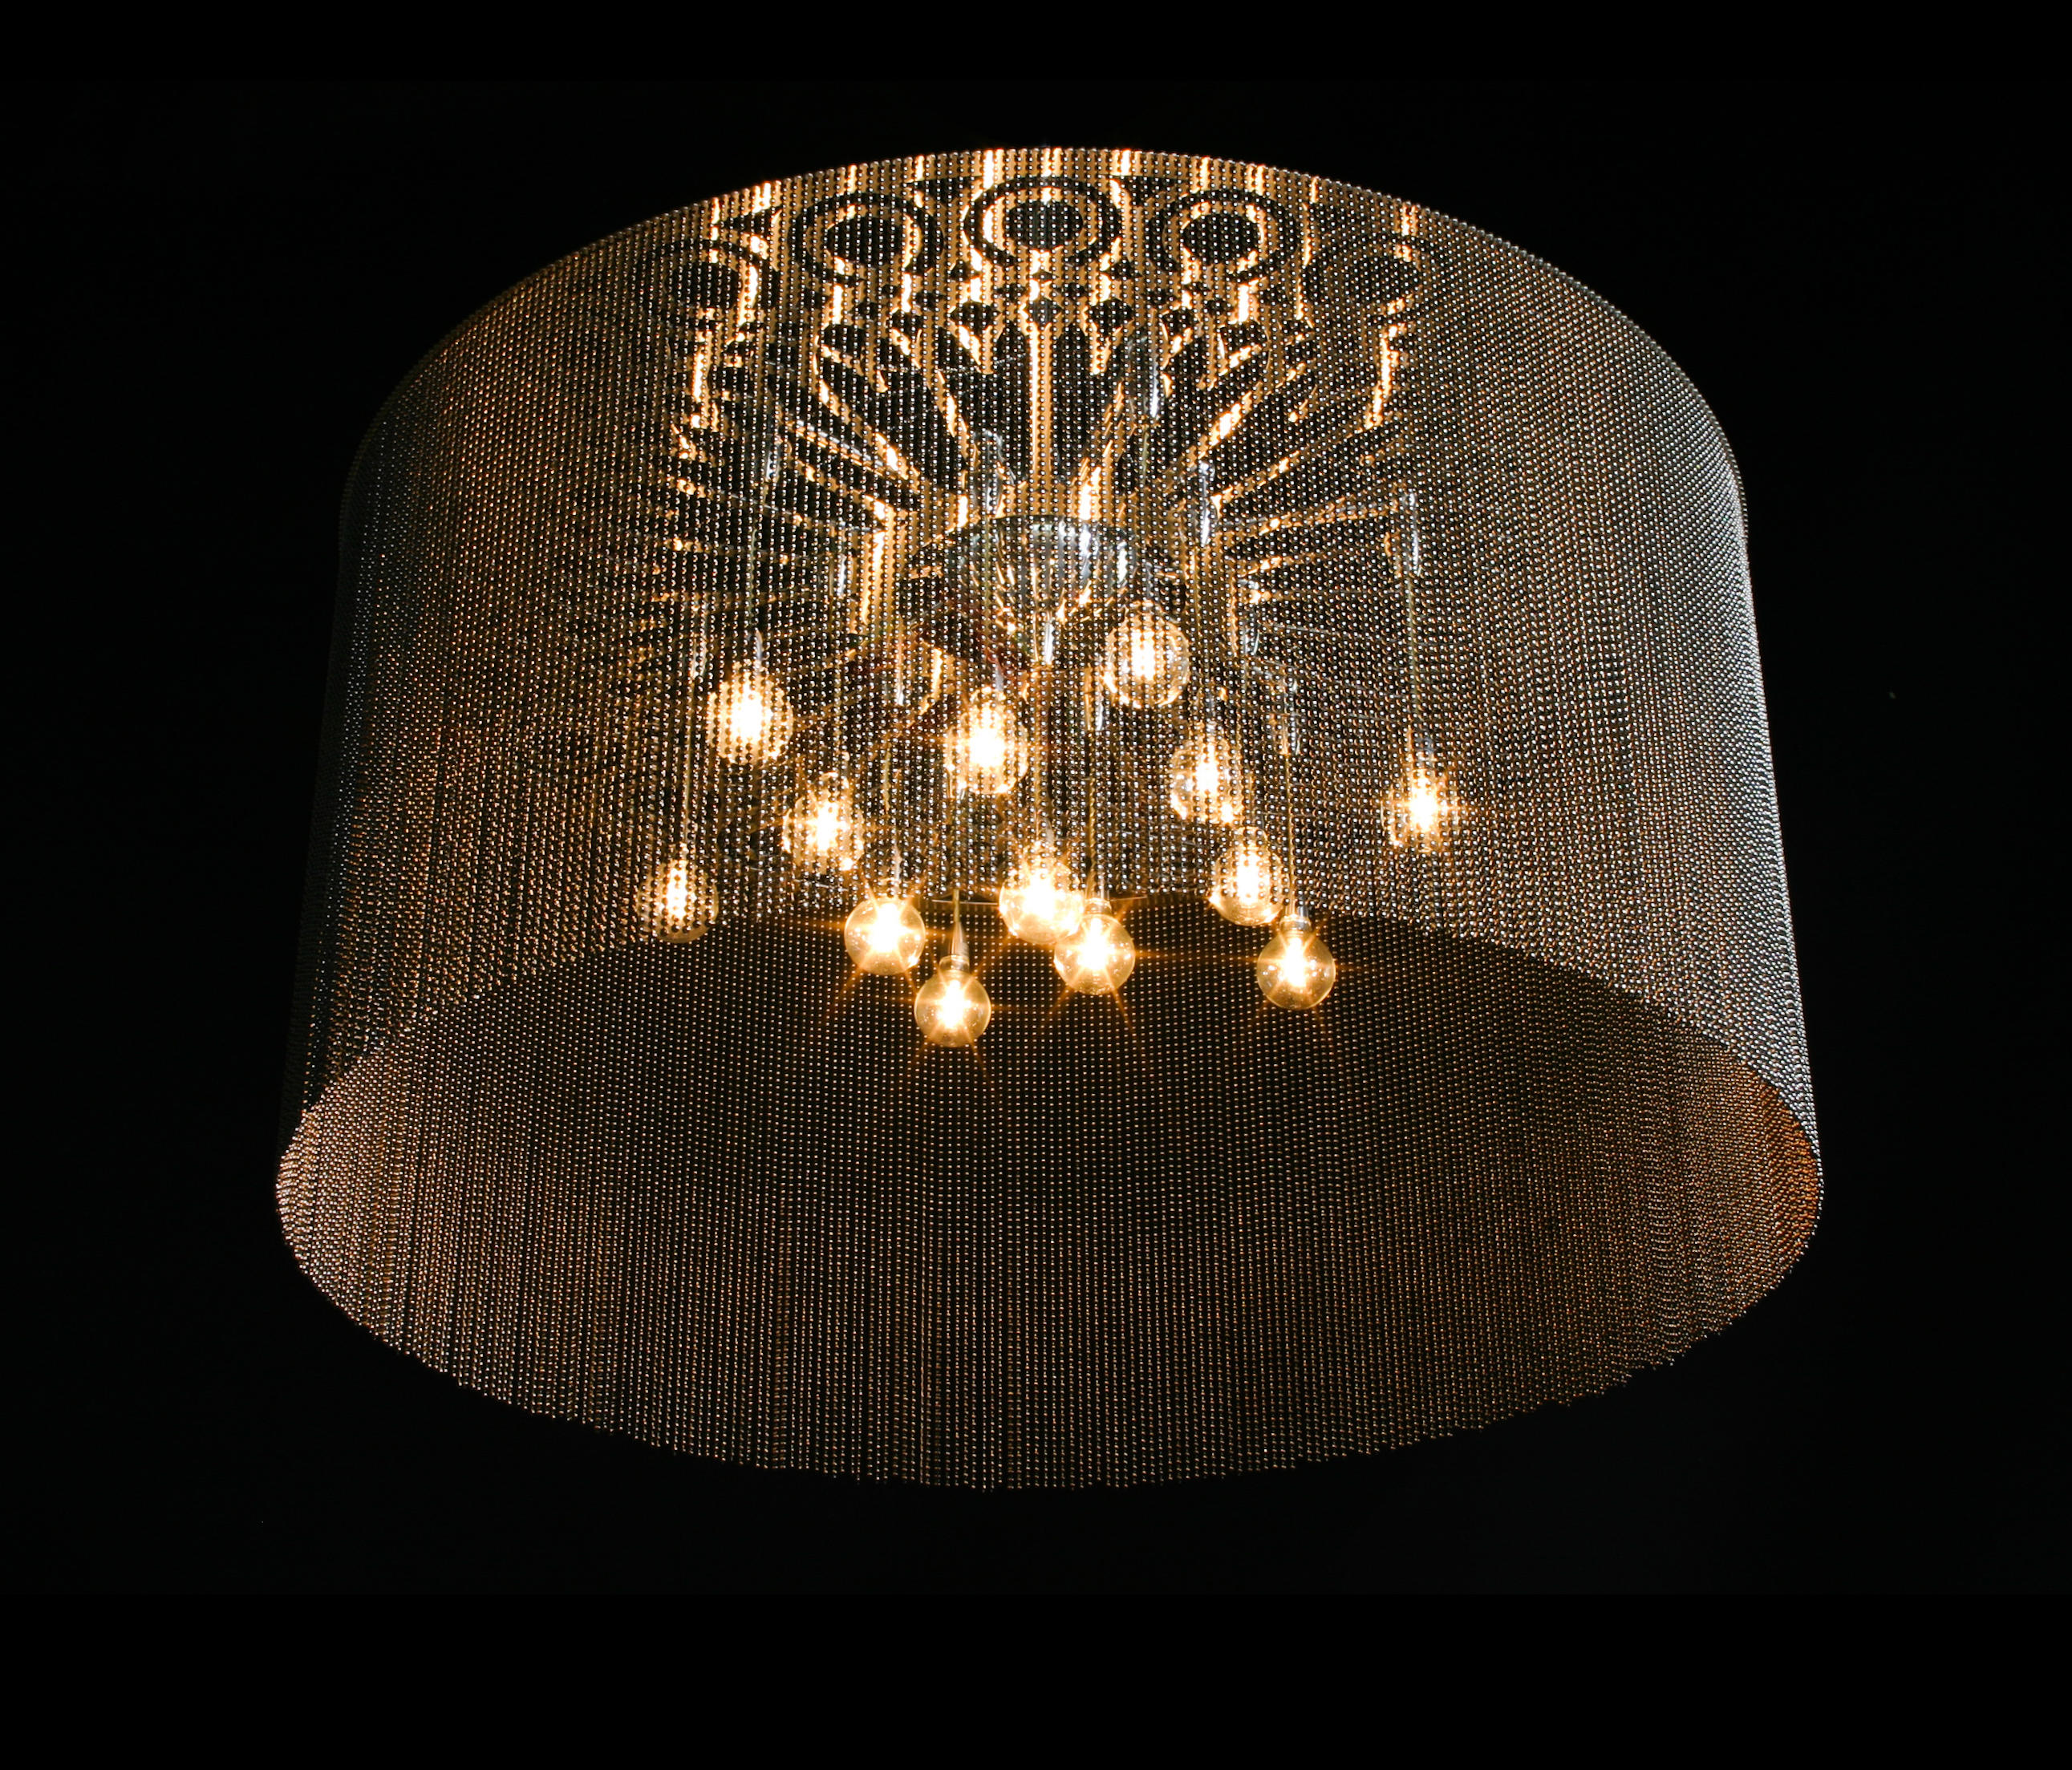 NGOMA DRUM 1000 CEILING MOUNT Chandeliers From Willowlamp Architonic